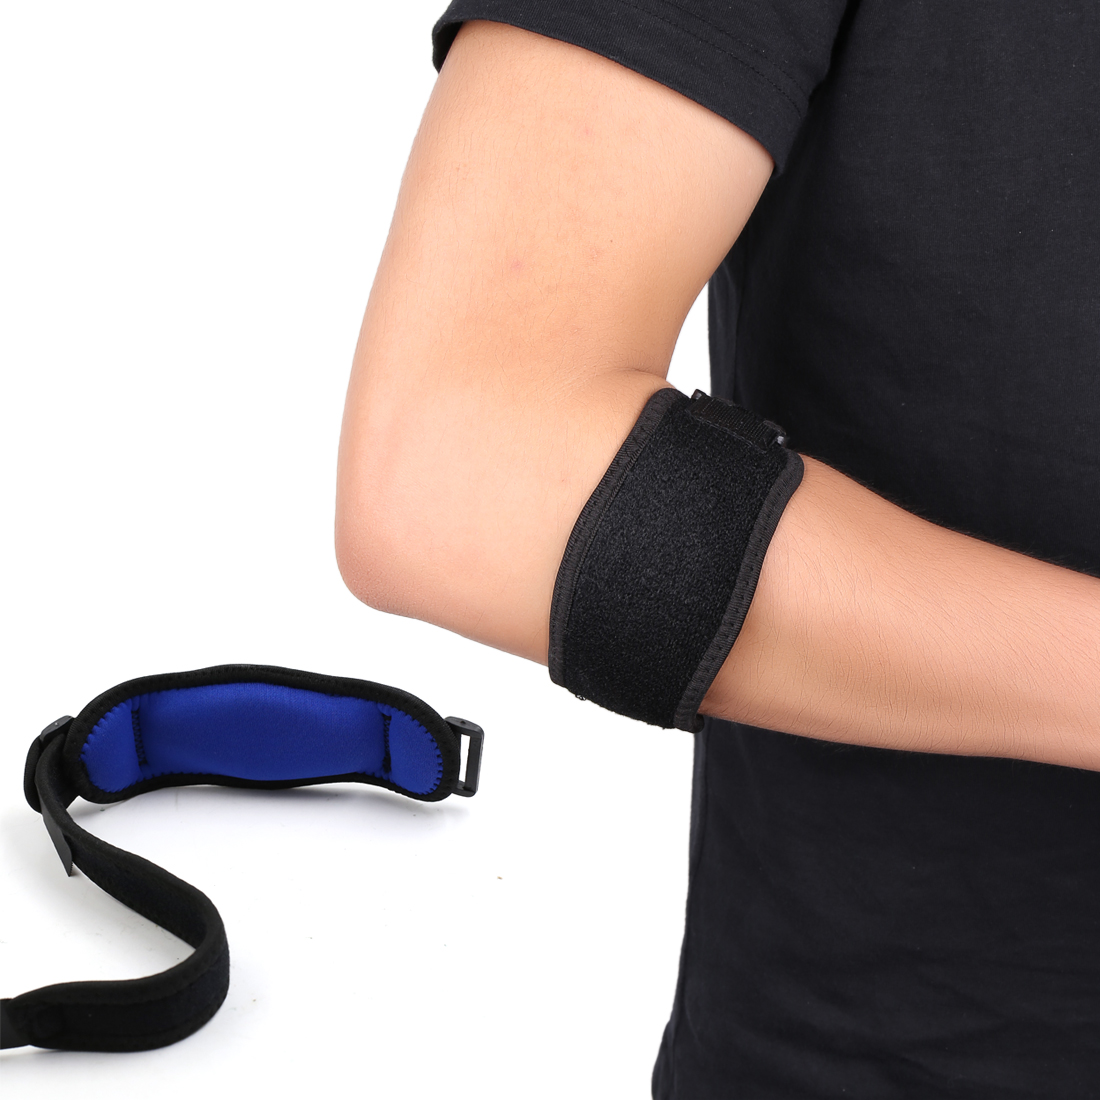 APTOCO Authorized Adjustable Elbow Brace Support Strap Band for Tendonitis w Compression Pad